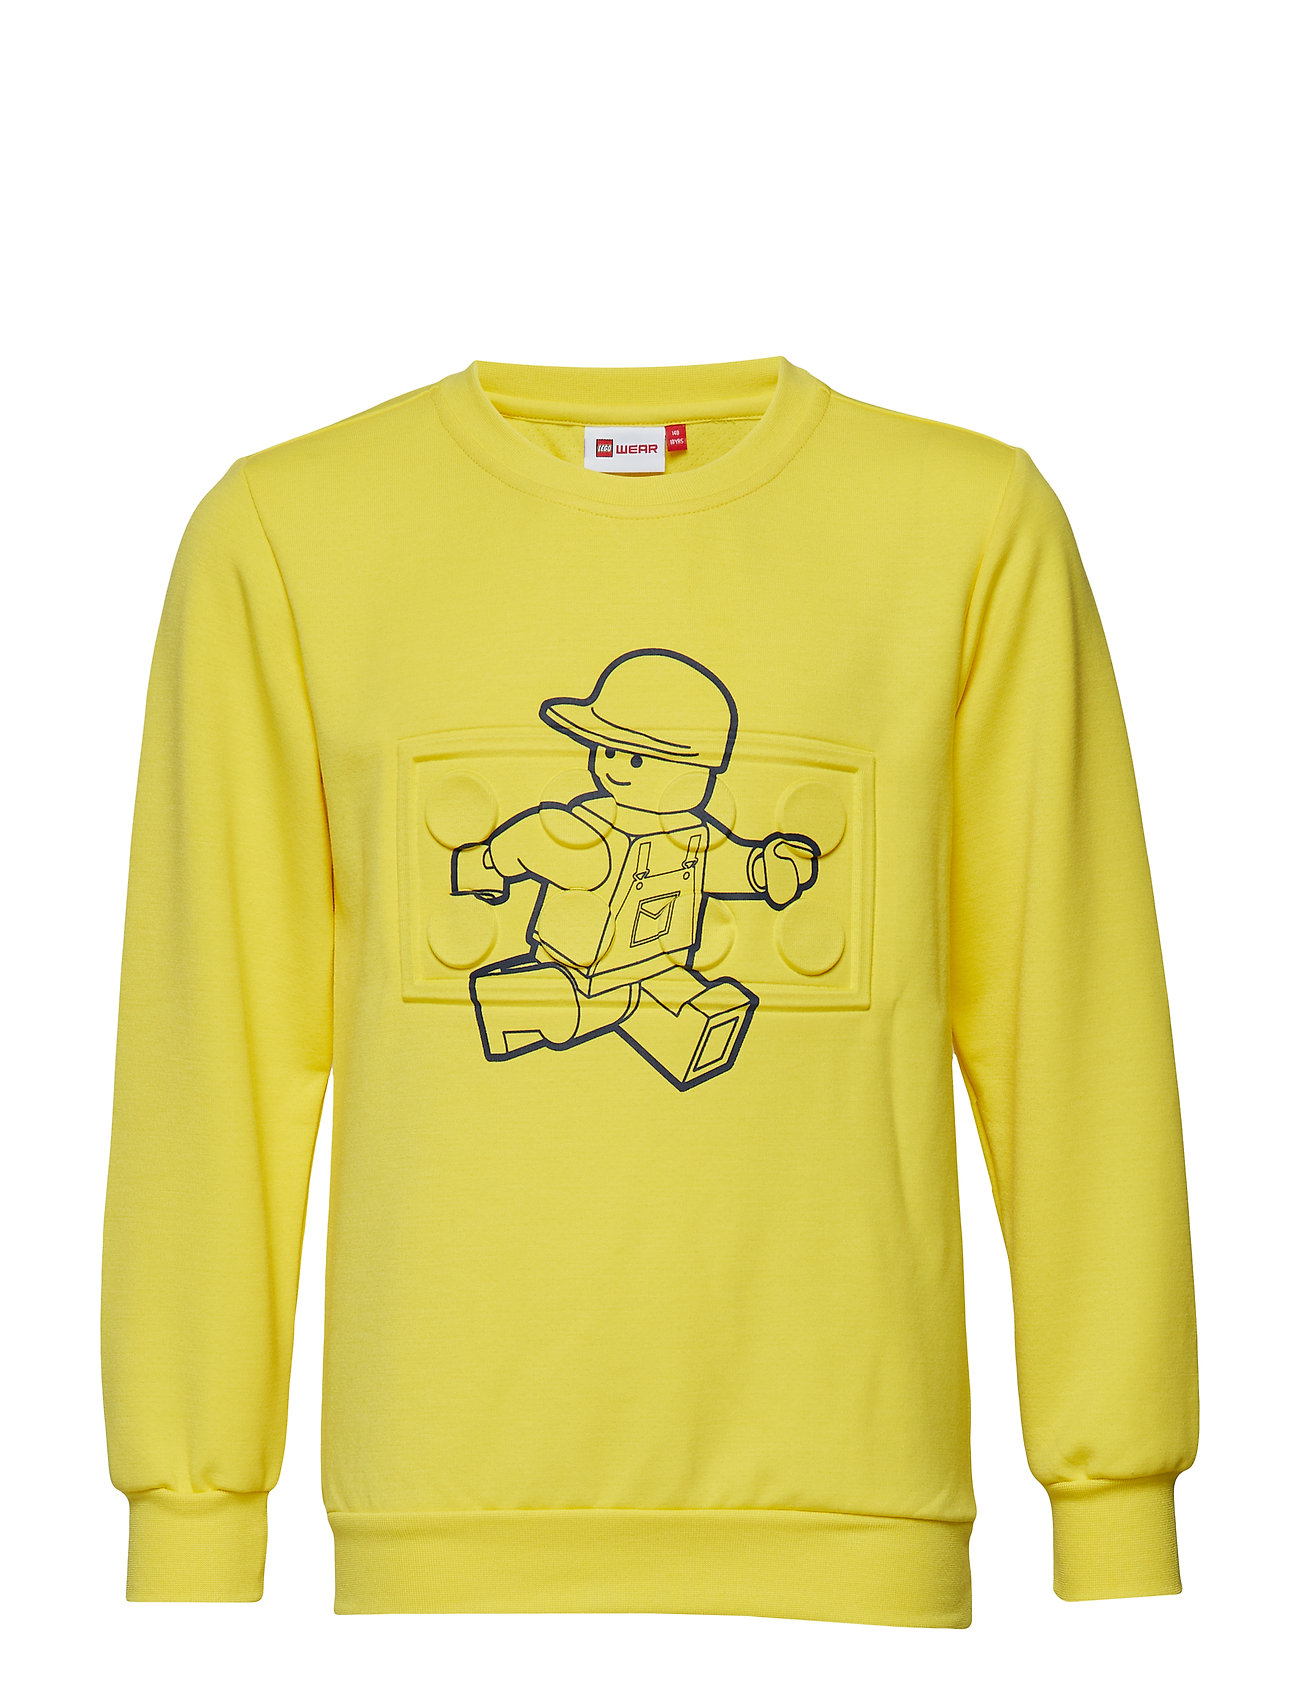 Lego wear SIAM 328 - SWEATSHIRT